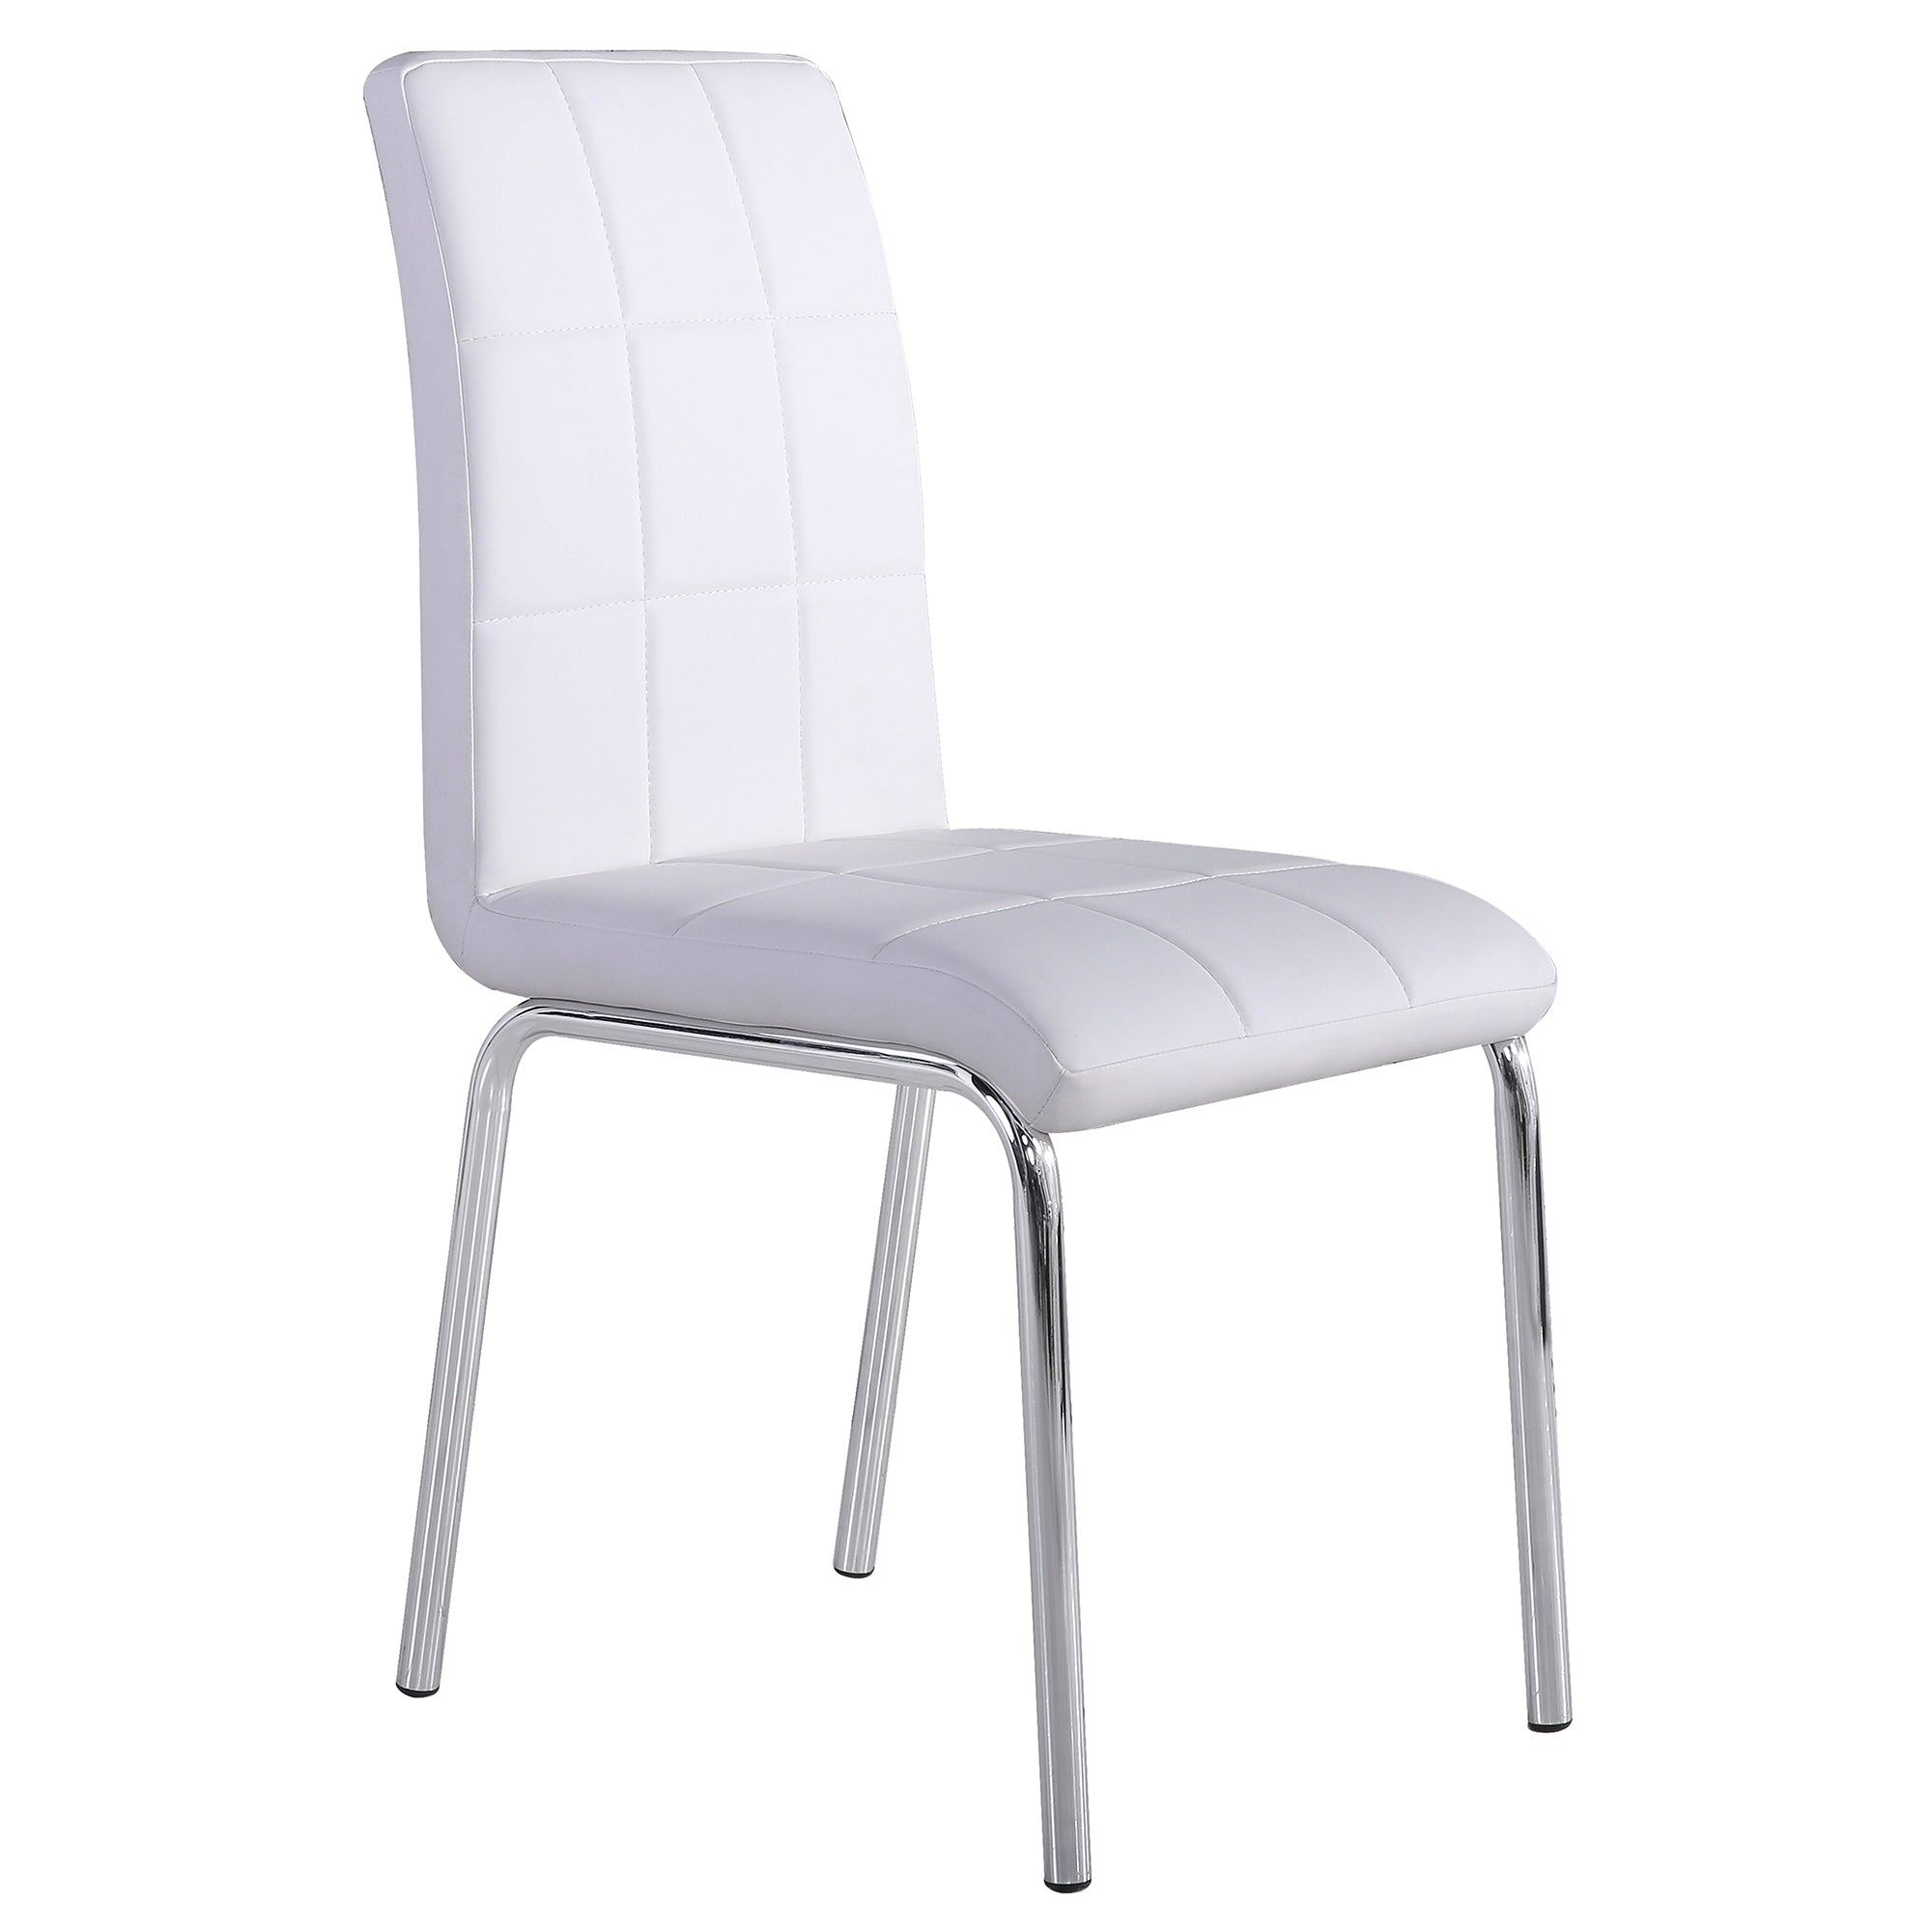 Solara II Dining Chair - White